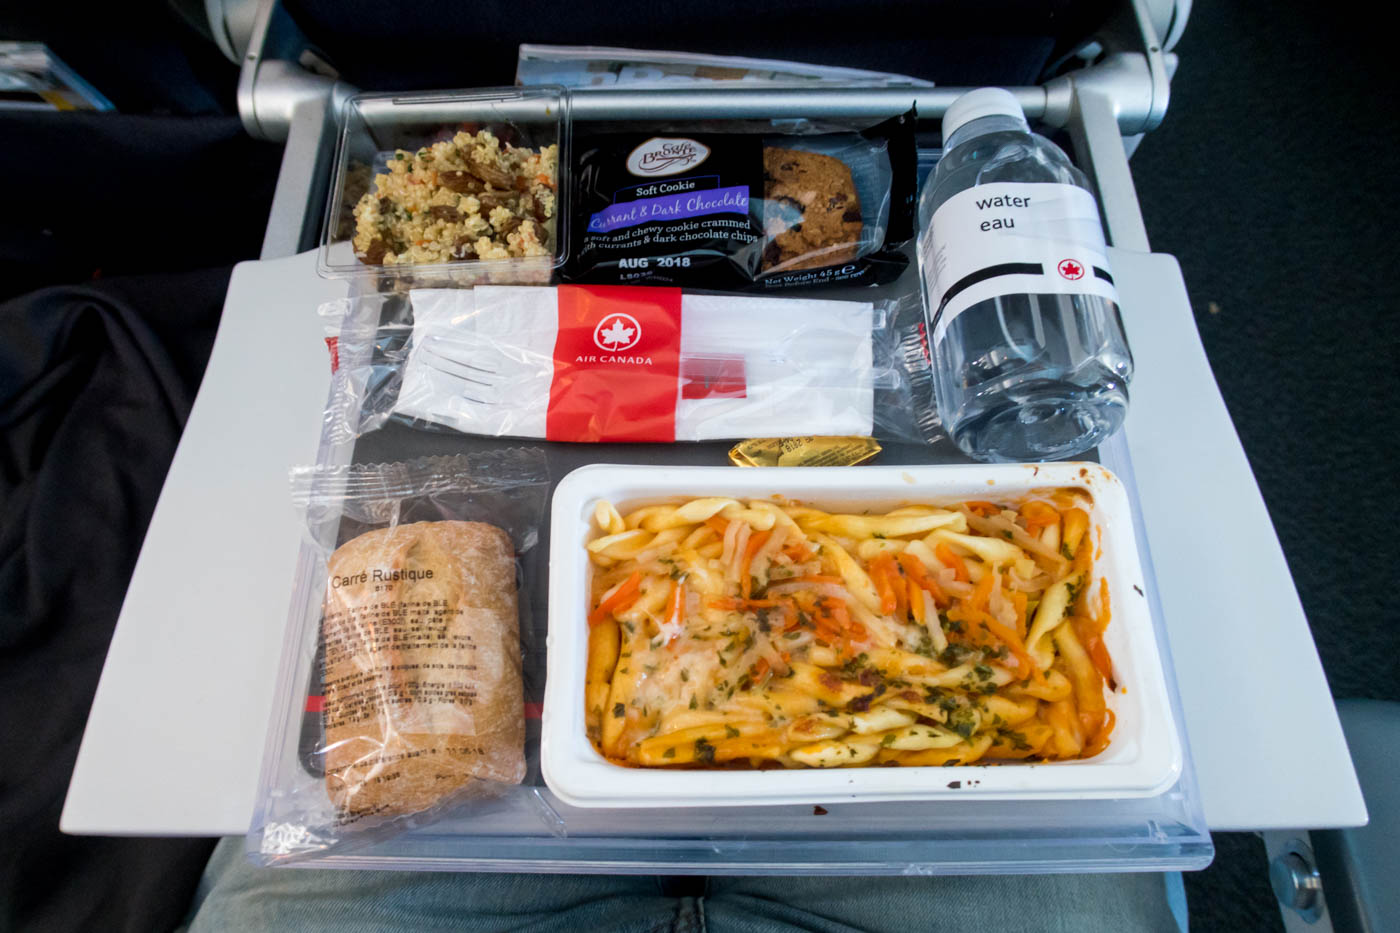 Air Canada Economy Class Meal